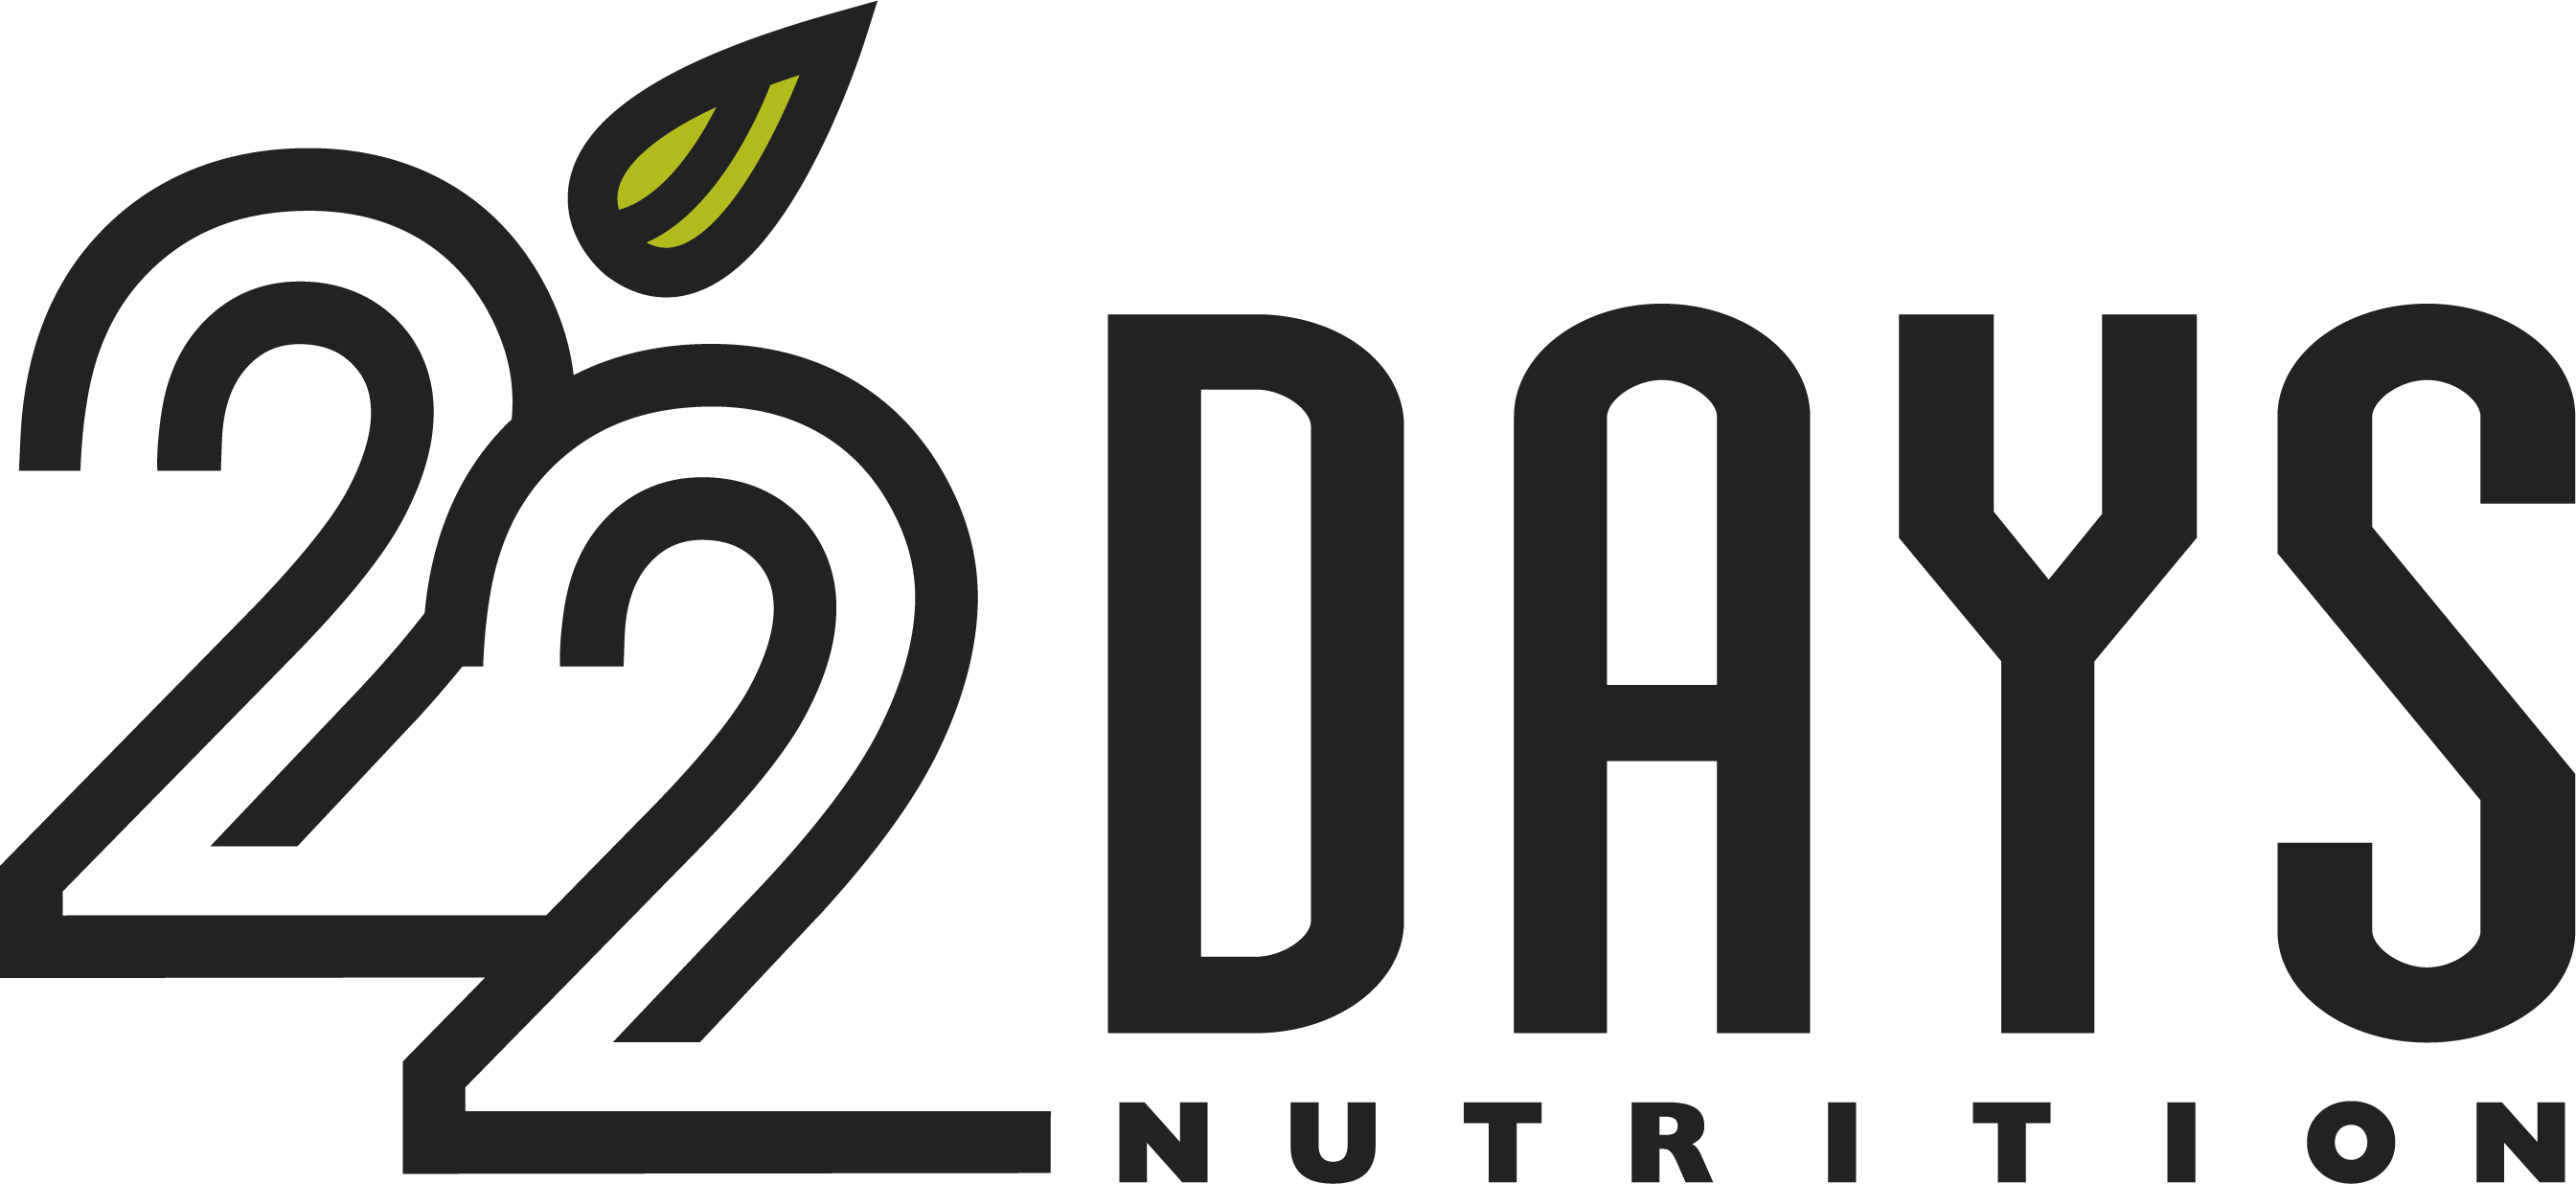 Our Mission – 22 Days Nutrition